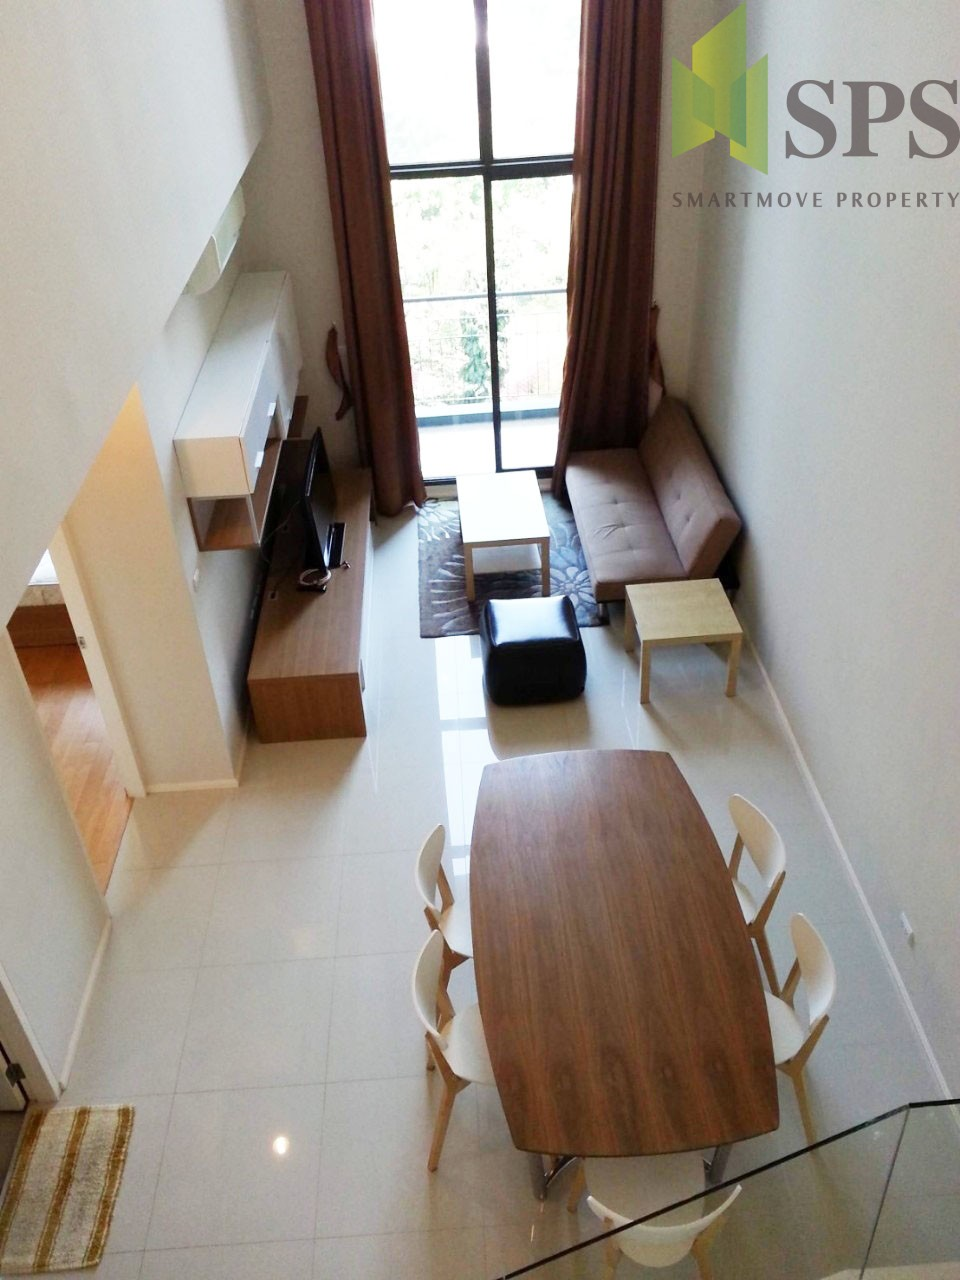 For Rent Condo 2 beds VILLA ASOKE ( SPS-GC220)